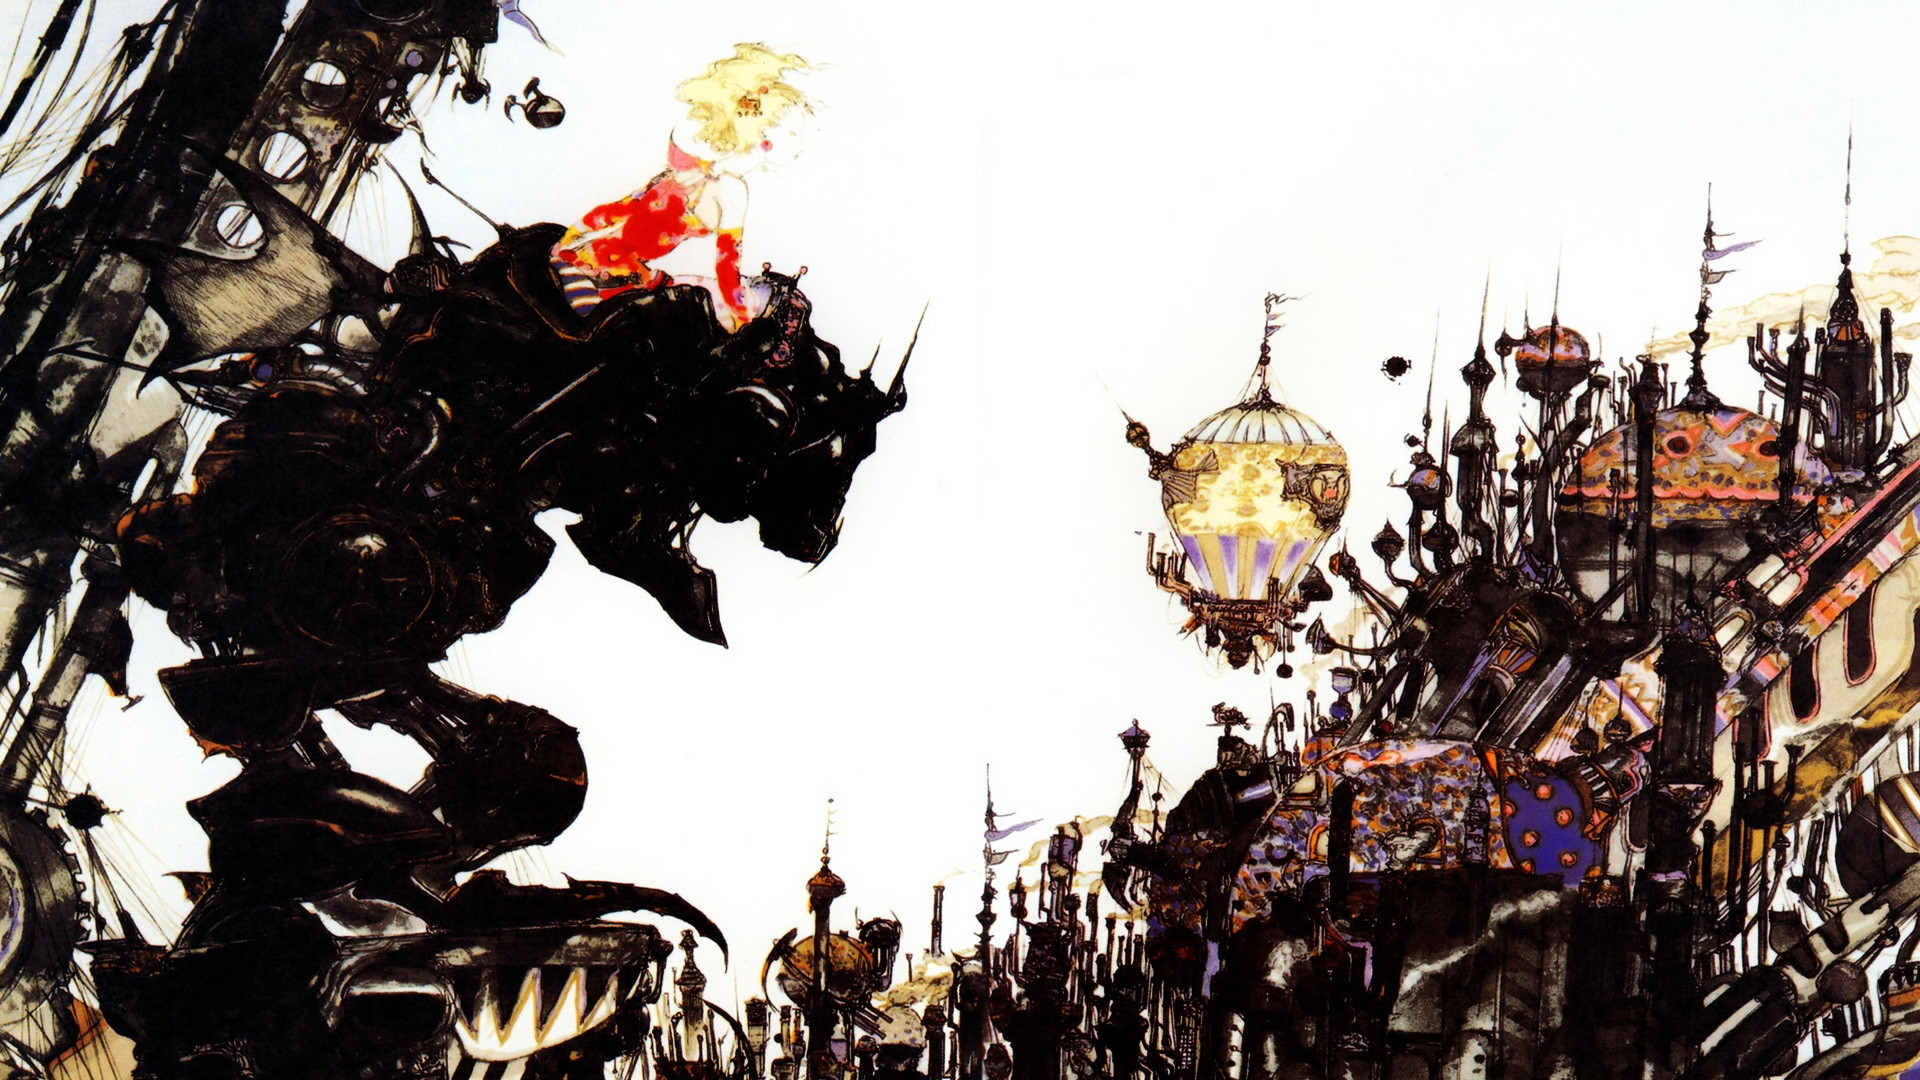 Wallpapers, Game HD Wallpapers, PS3 Video Games, final fantasy vi .